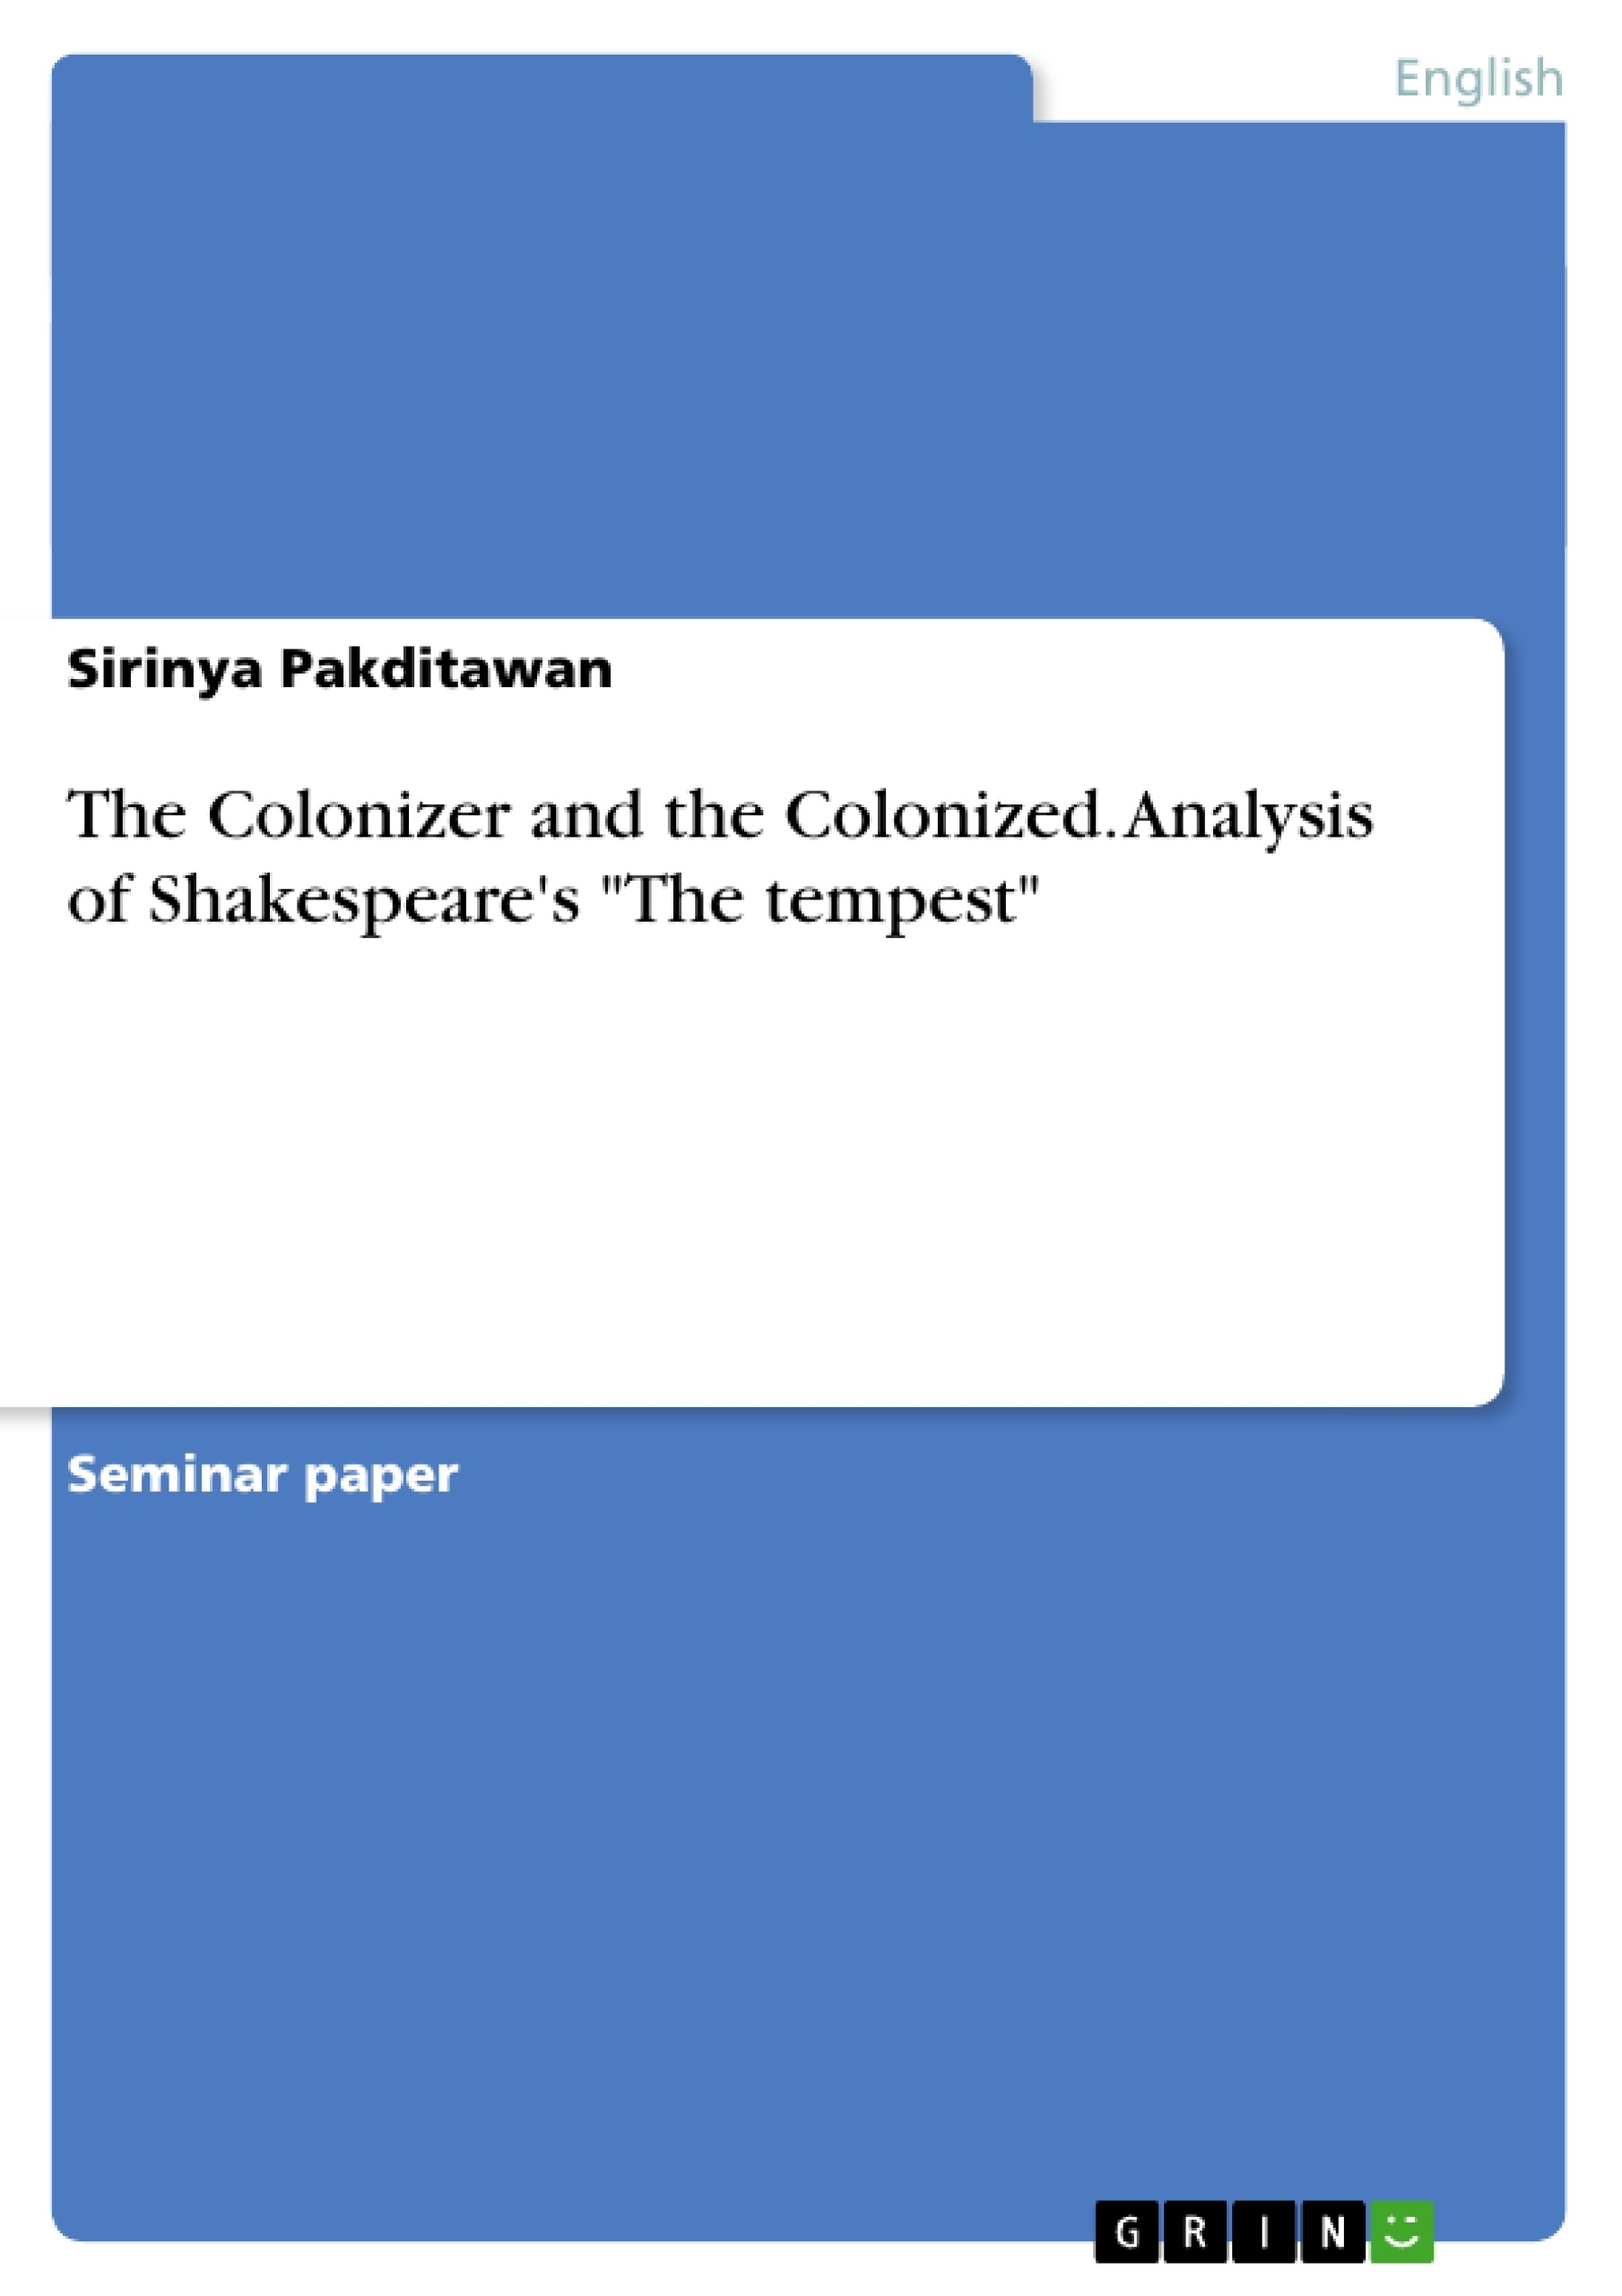 Comparative essay taming of the shrew